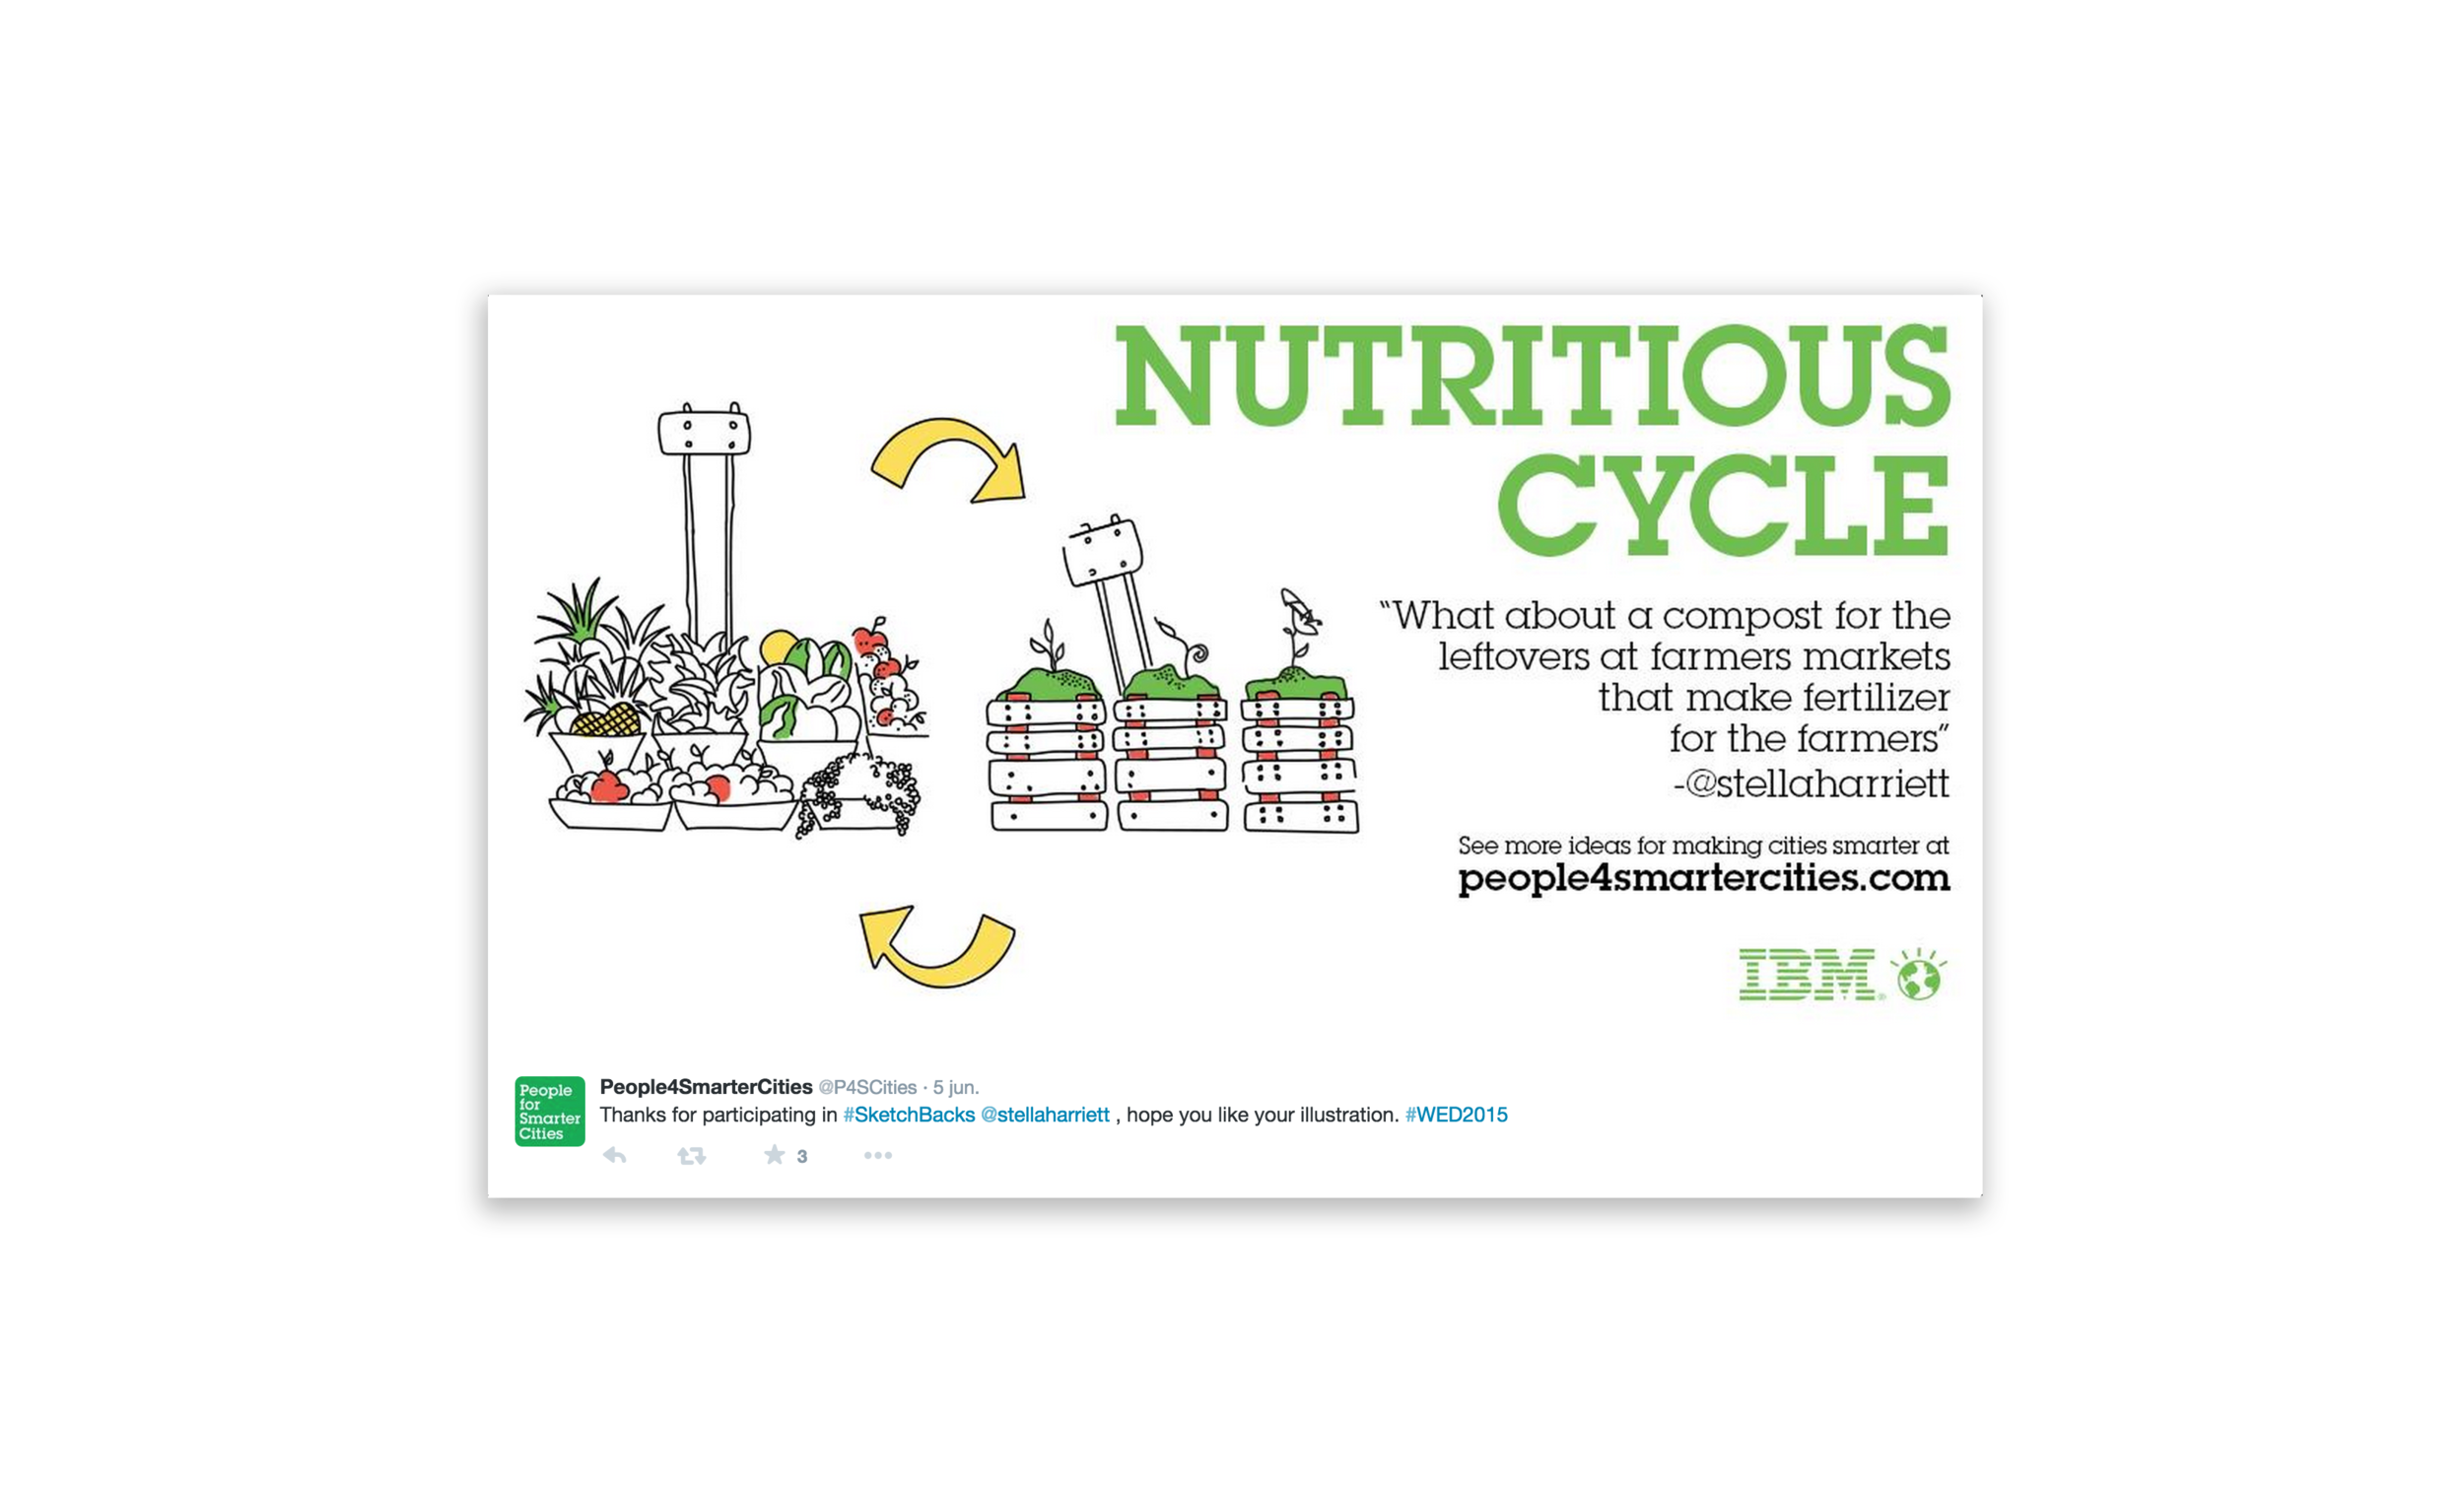 NutritiousCycle.png